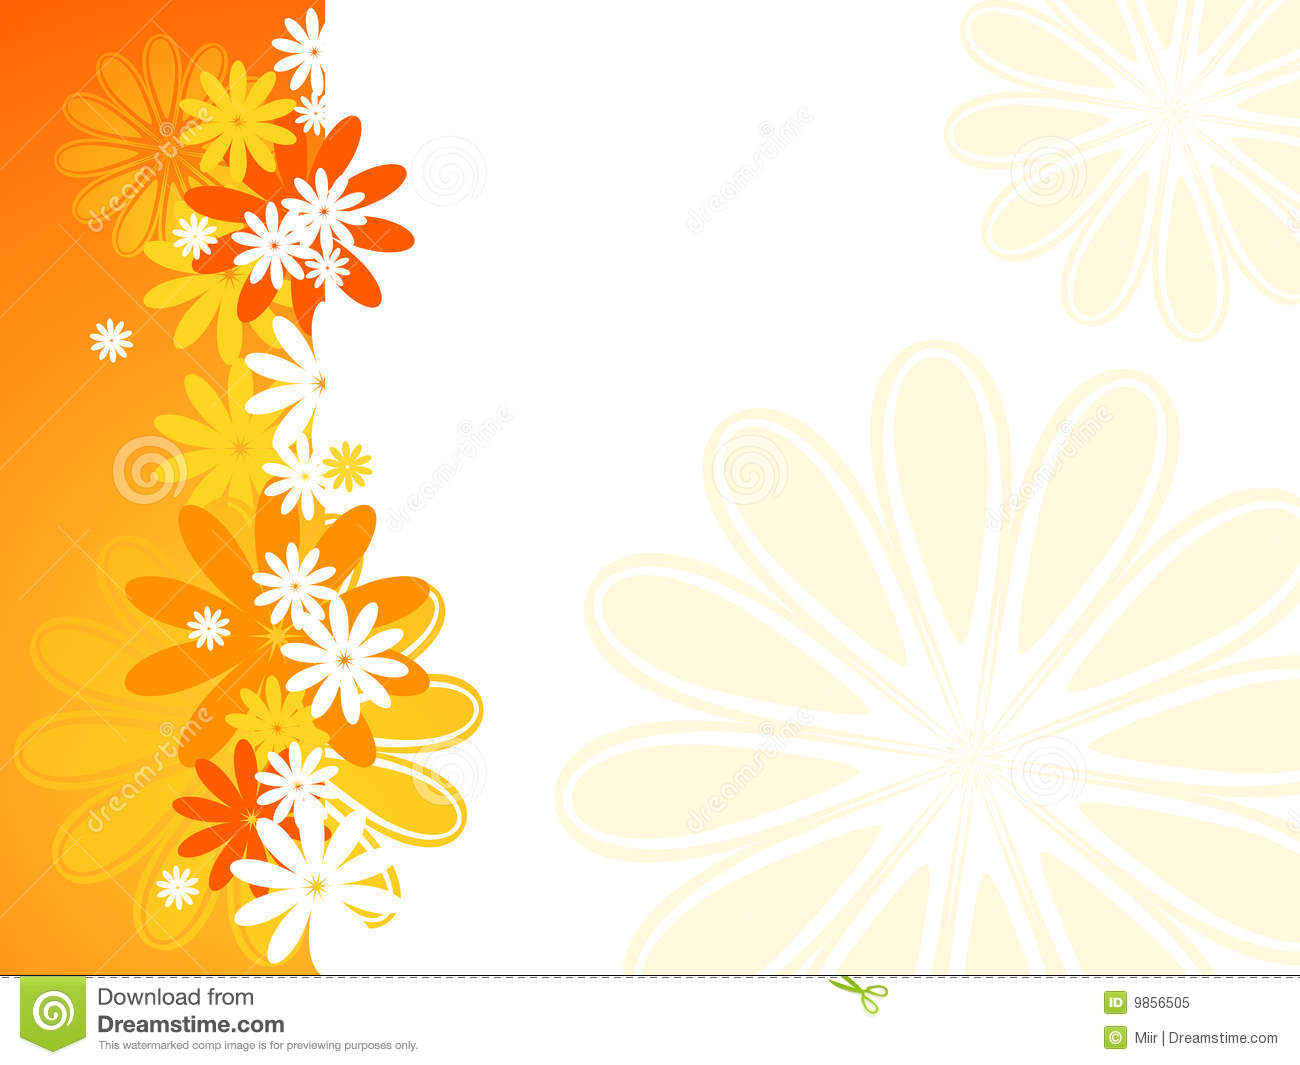 Free background images of flowers jpg library stock Free background images of flowers - ClipartFest jpg library stock